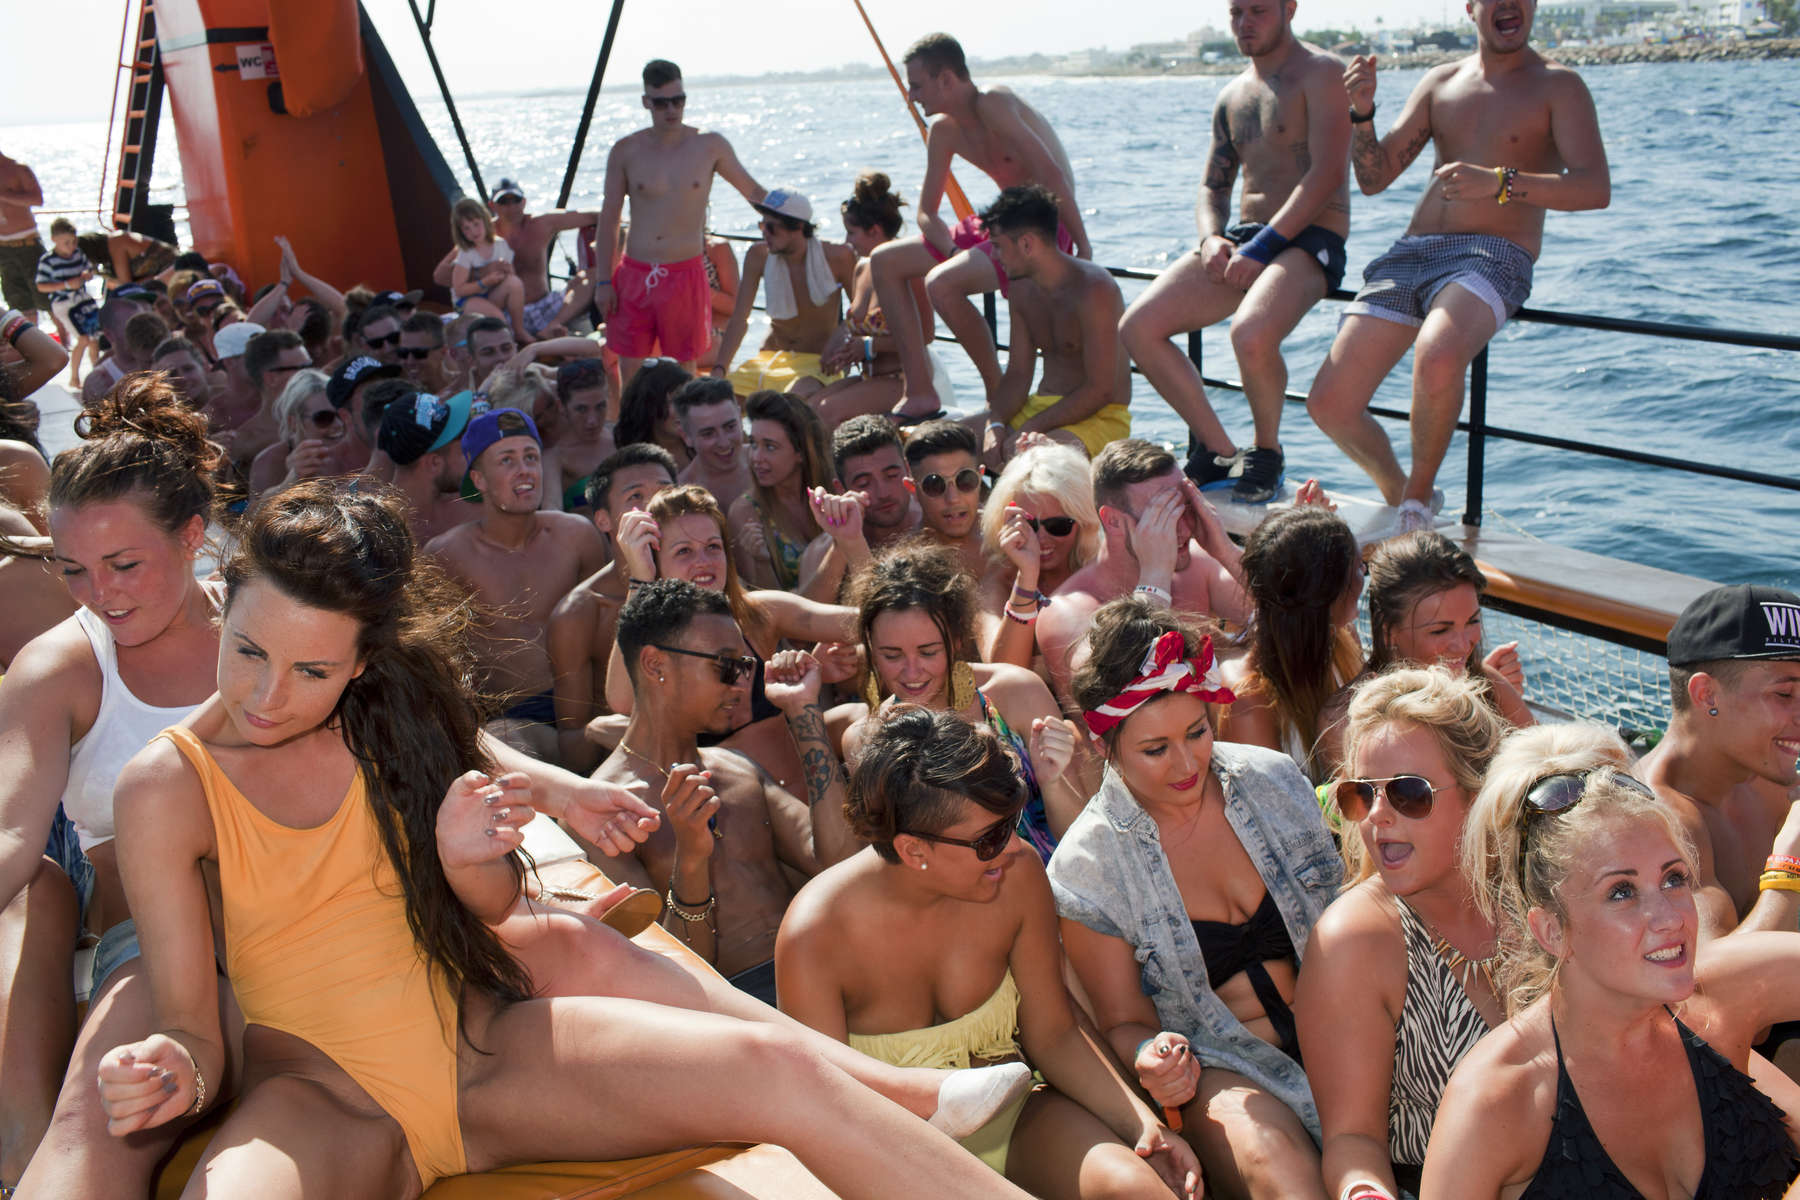 16:25 An afternoon boat party for the many British seasonal bar workers and promoters in Ayia Napa, Cyprus. They are performing a dance to the 1979 funk anthem recorded by The Gap Band, Oops Up Side Your Head.